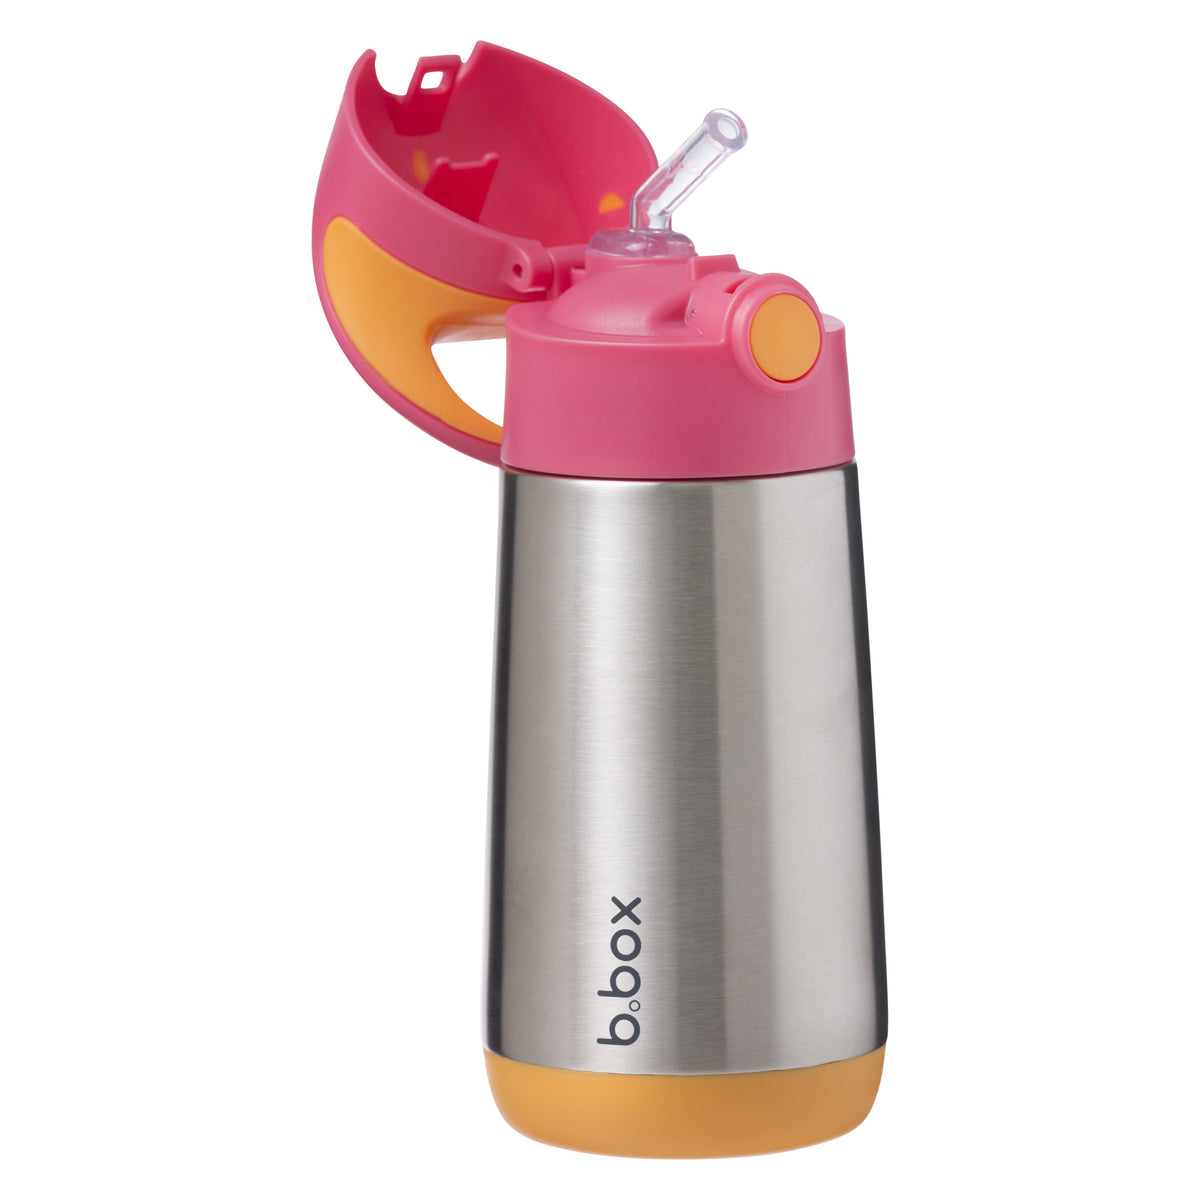 b.box Insulated Drink Bottle - Strawberry Shake-Drink Bottle-Lunchbox Mini